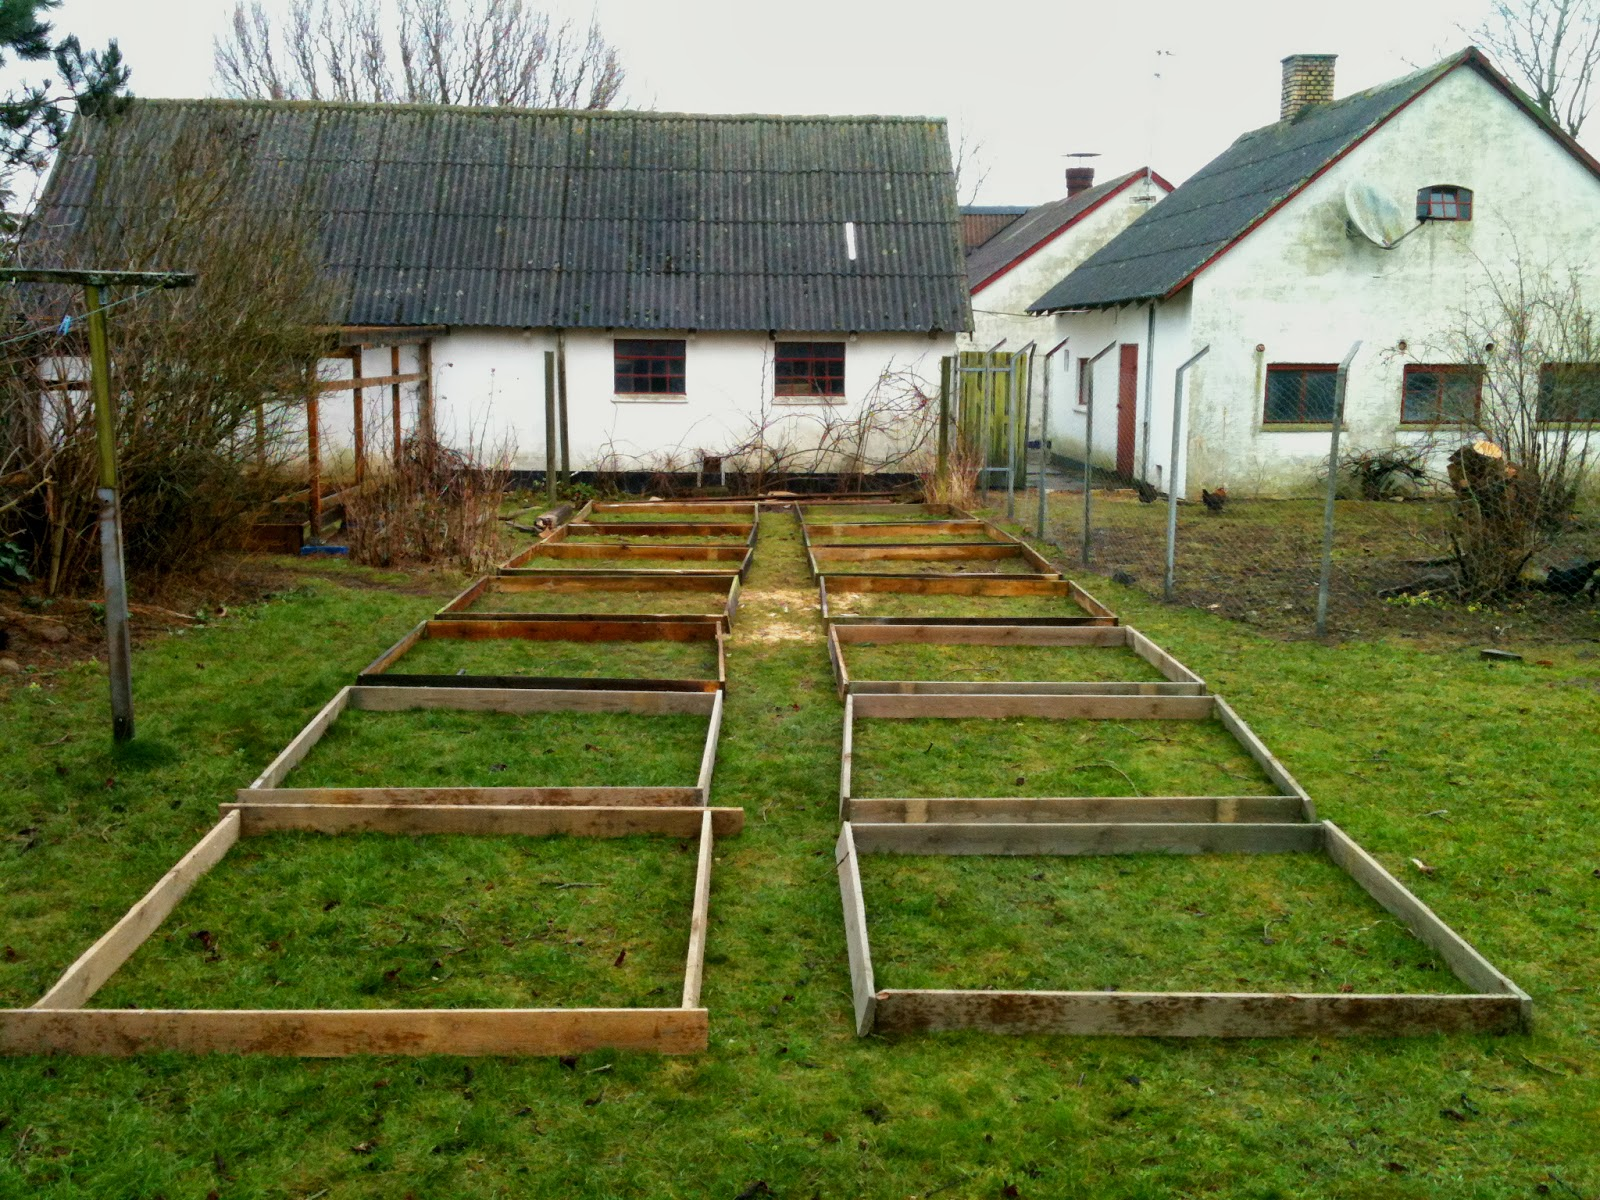 I am making 16 raised beds, each is 2 square meters. I will simply lay newspapers and cardboard on top of the grass and then a 15cm thick layer of compost ...